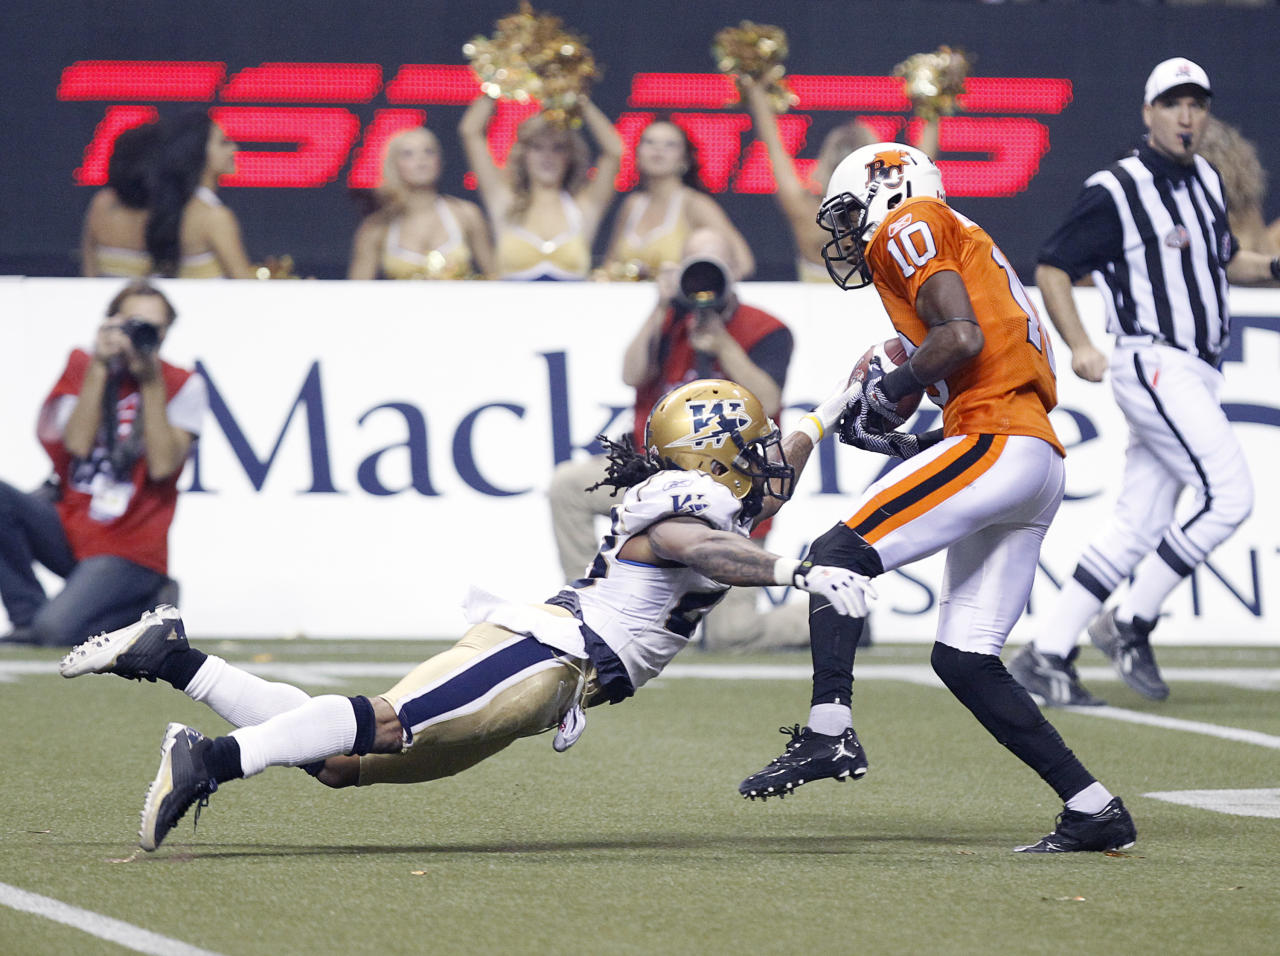 VANCOUVER, CANADA - NOVEMBER 27: Kierrie Johnson #10 of the BC Lions evades Jonathan Hefney #23 of the Winnipeg Blue Bombers and races for a third-quarter touchdown during the  CFL 99th Grey Cup November 27, 2011 at BC Place in Vancouver, British Columbia, Canada. (Photo by Jeff Vinnick/Getty Images)